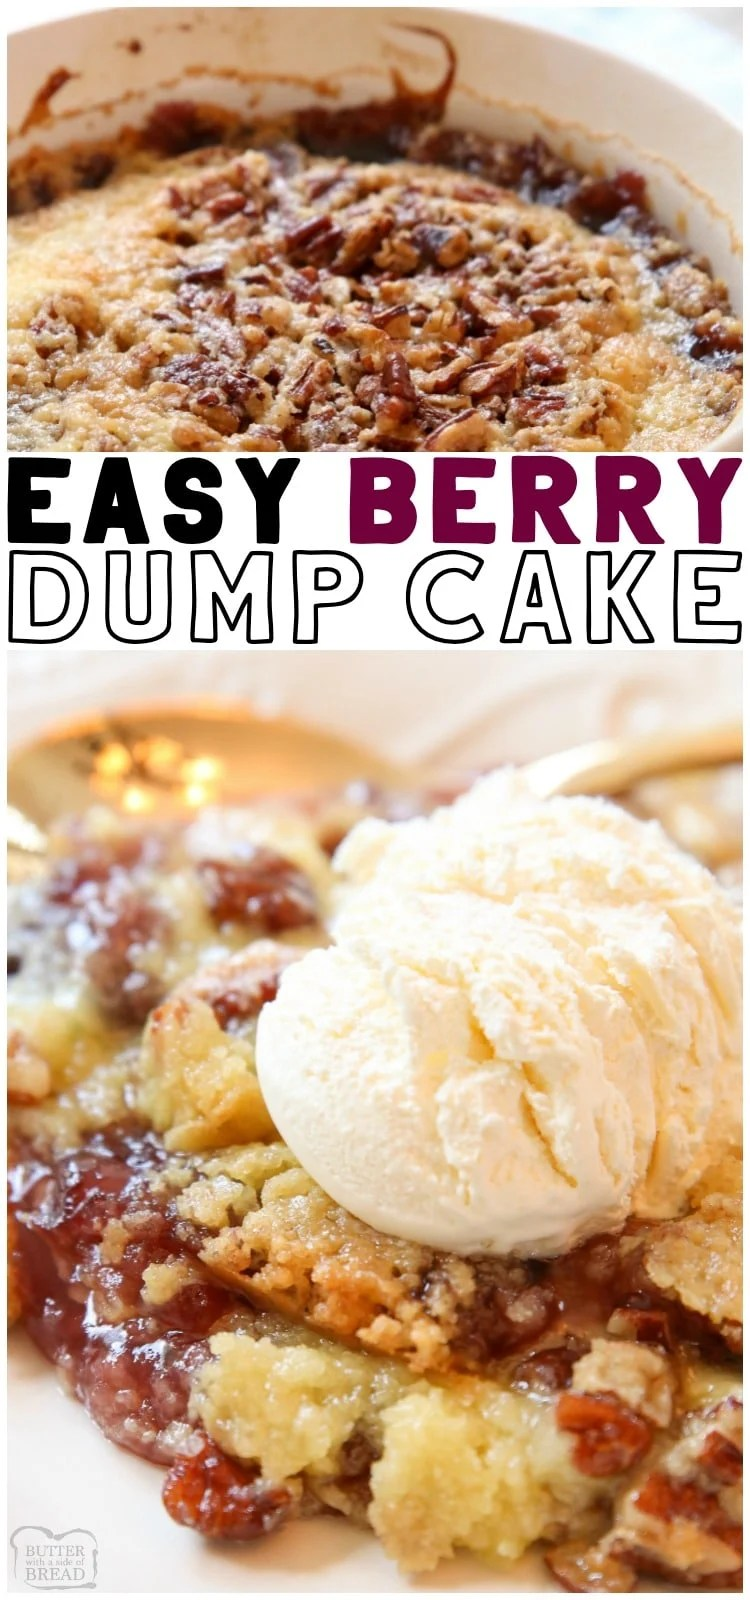 Berry Dump Cake recipe made with just 4 ingredients and ready to serve in 30 minutes! Easy dump cake made with raspberries, blueberries and strawberries. This Berry Cake is perfect served with vanilla ice cream. #dumpcake #dessert #baking #cake #berry #recipe from BUTTER WITH A SIDE OF BREAD